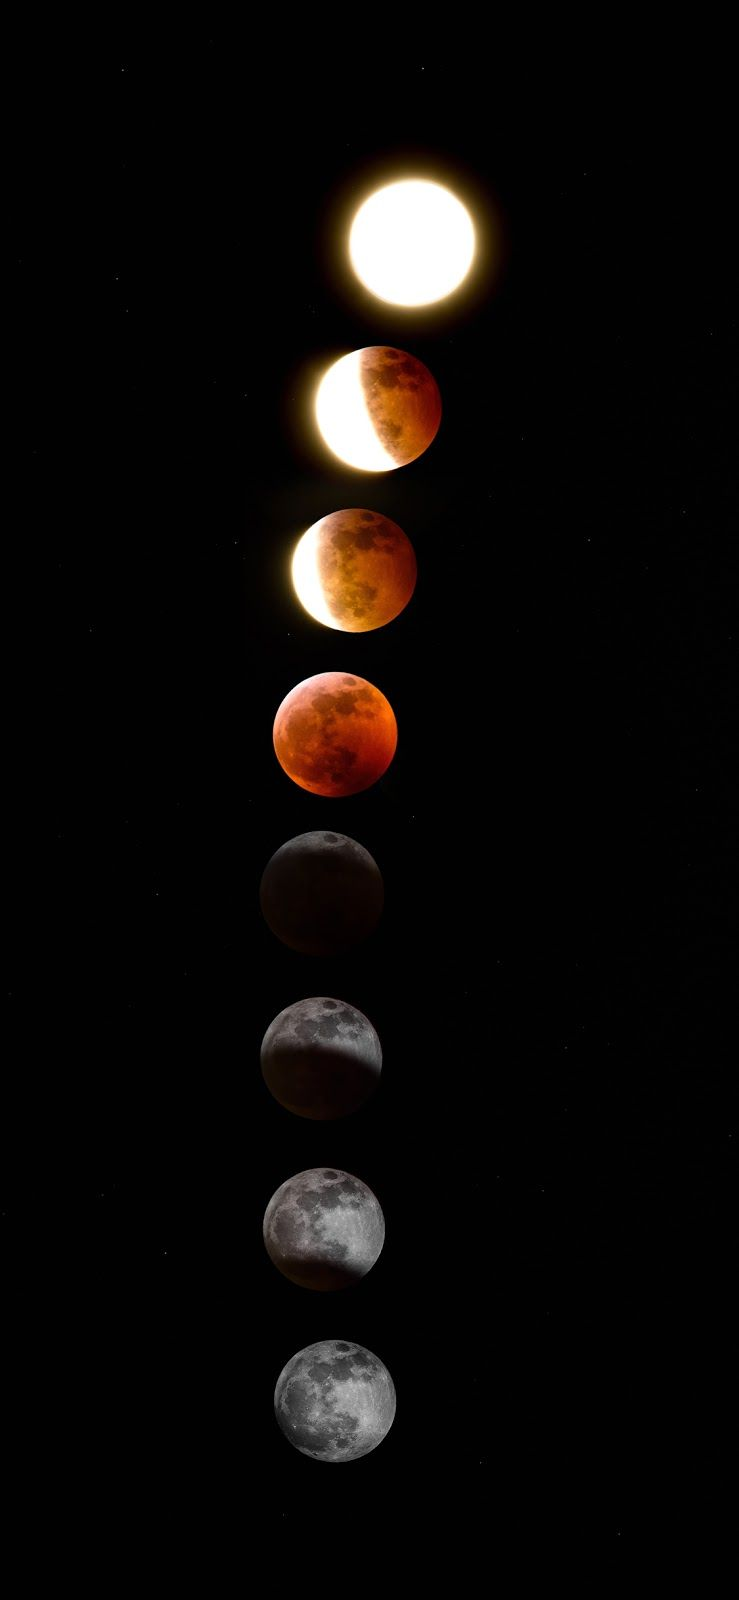 Lunar Eclipse Iphone X Wallpaper Iphone Android Background Followme Beautiful Wallpapers For Iphone Art Wallpaper Iphone Lunar Eclipse